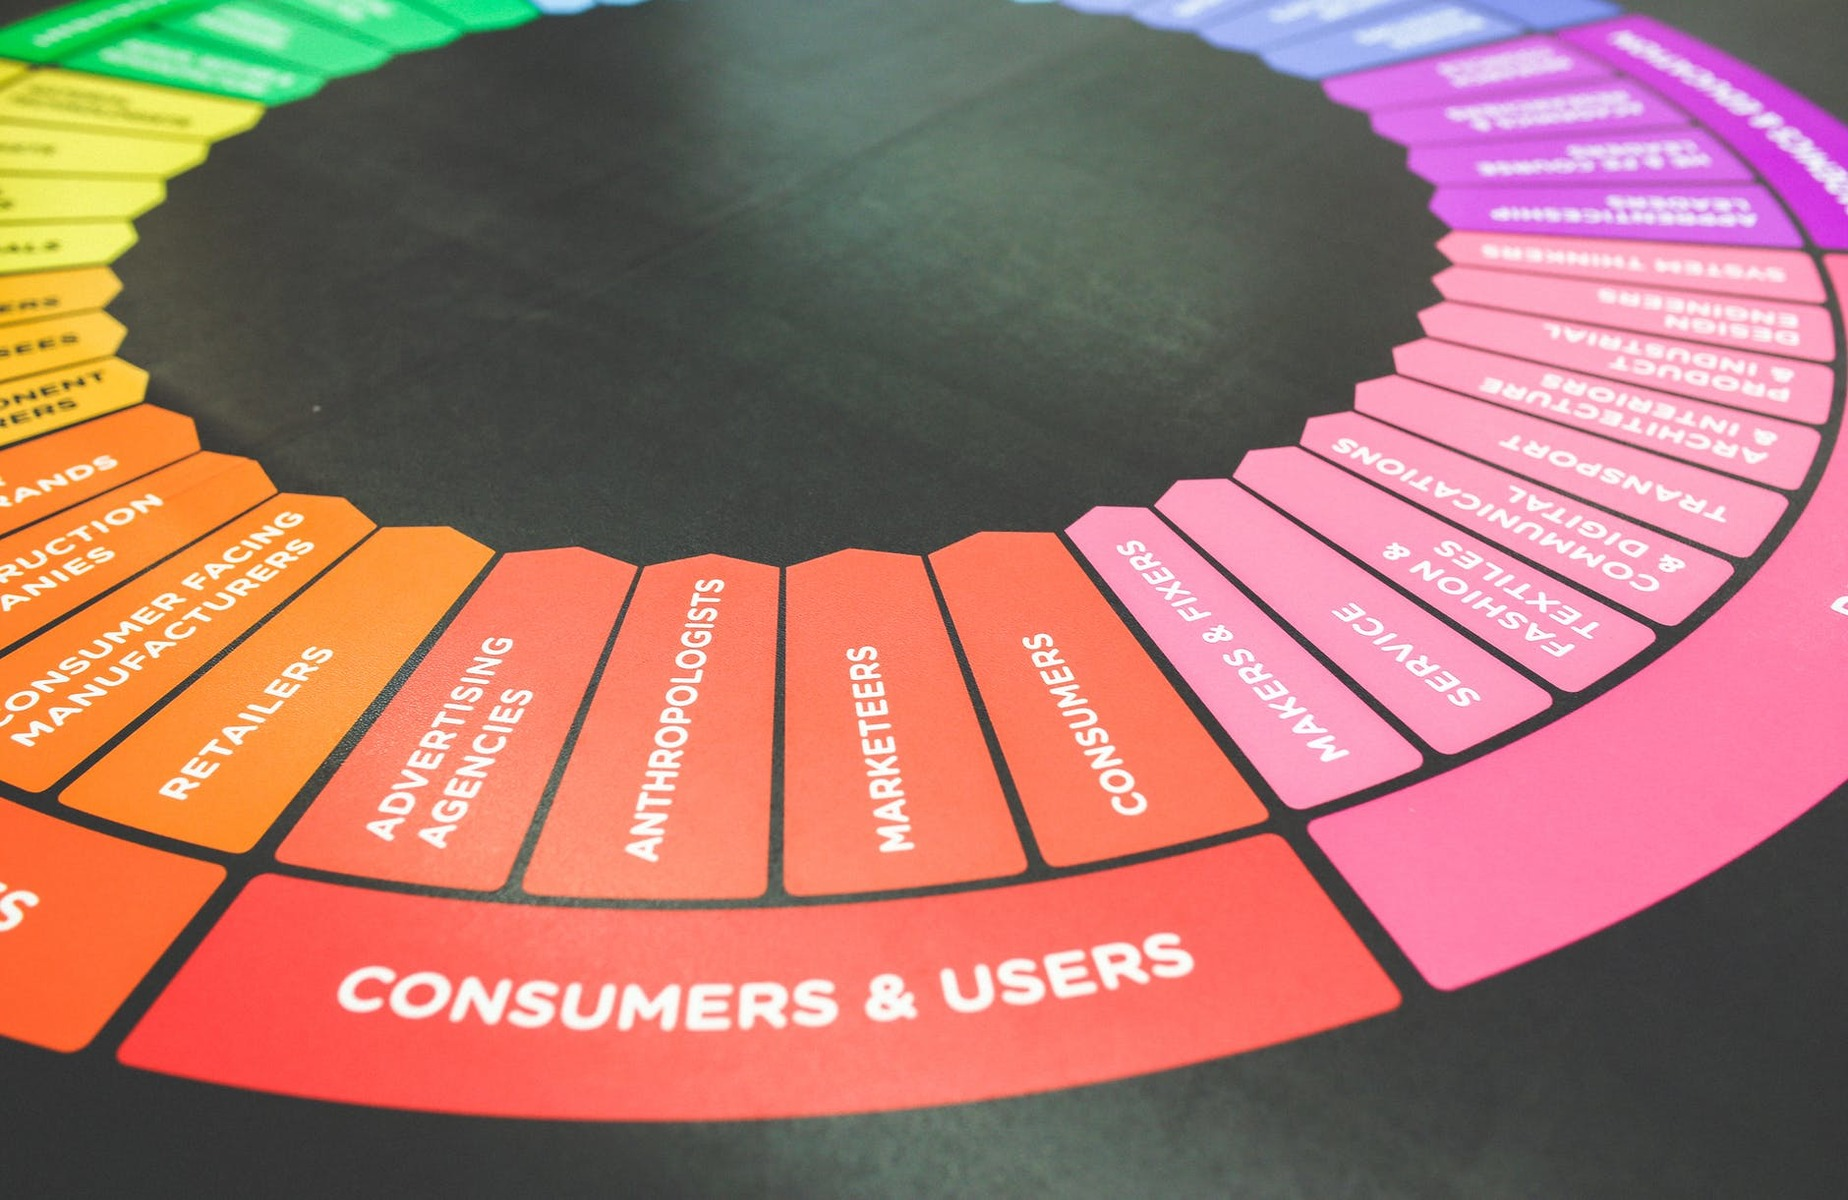 Alignment and purpose key to customer centric marketing